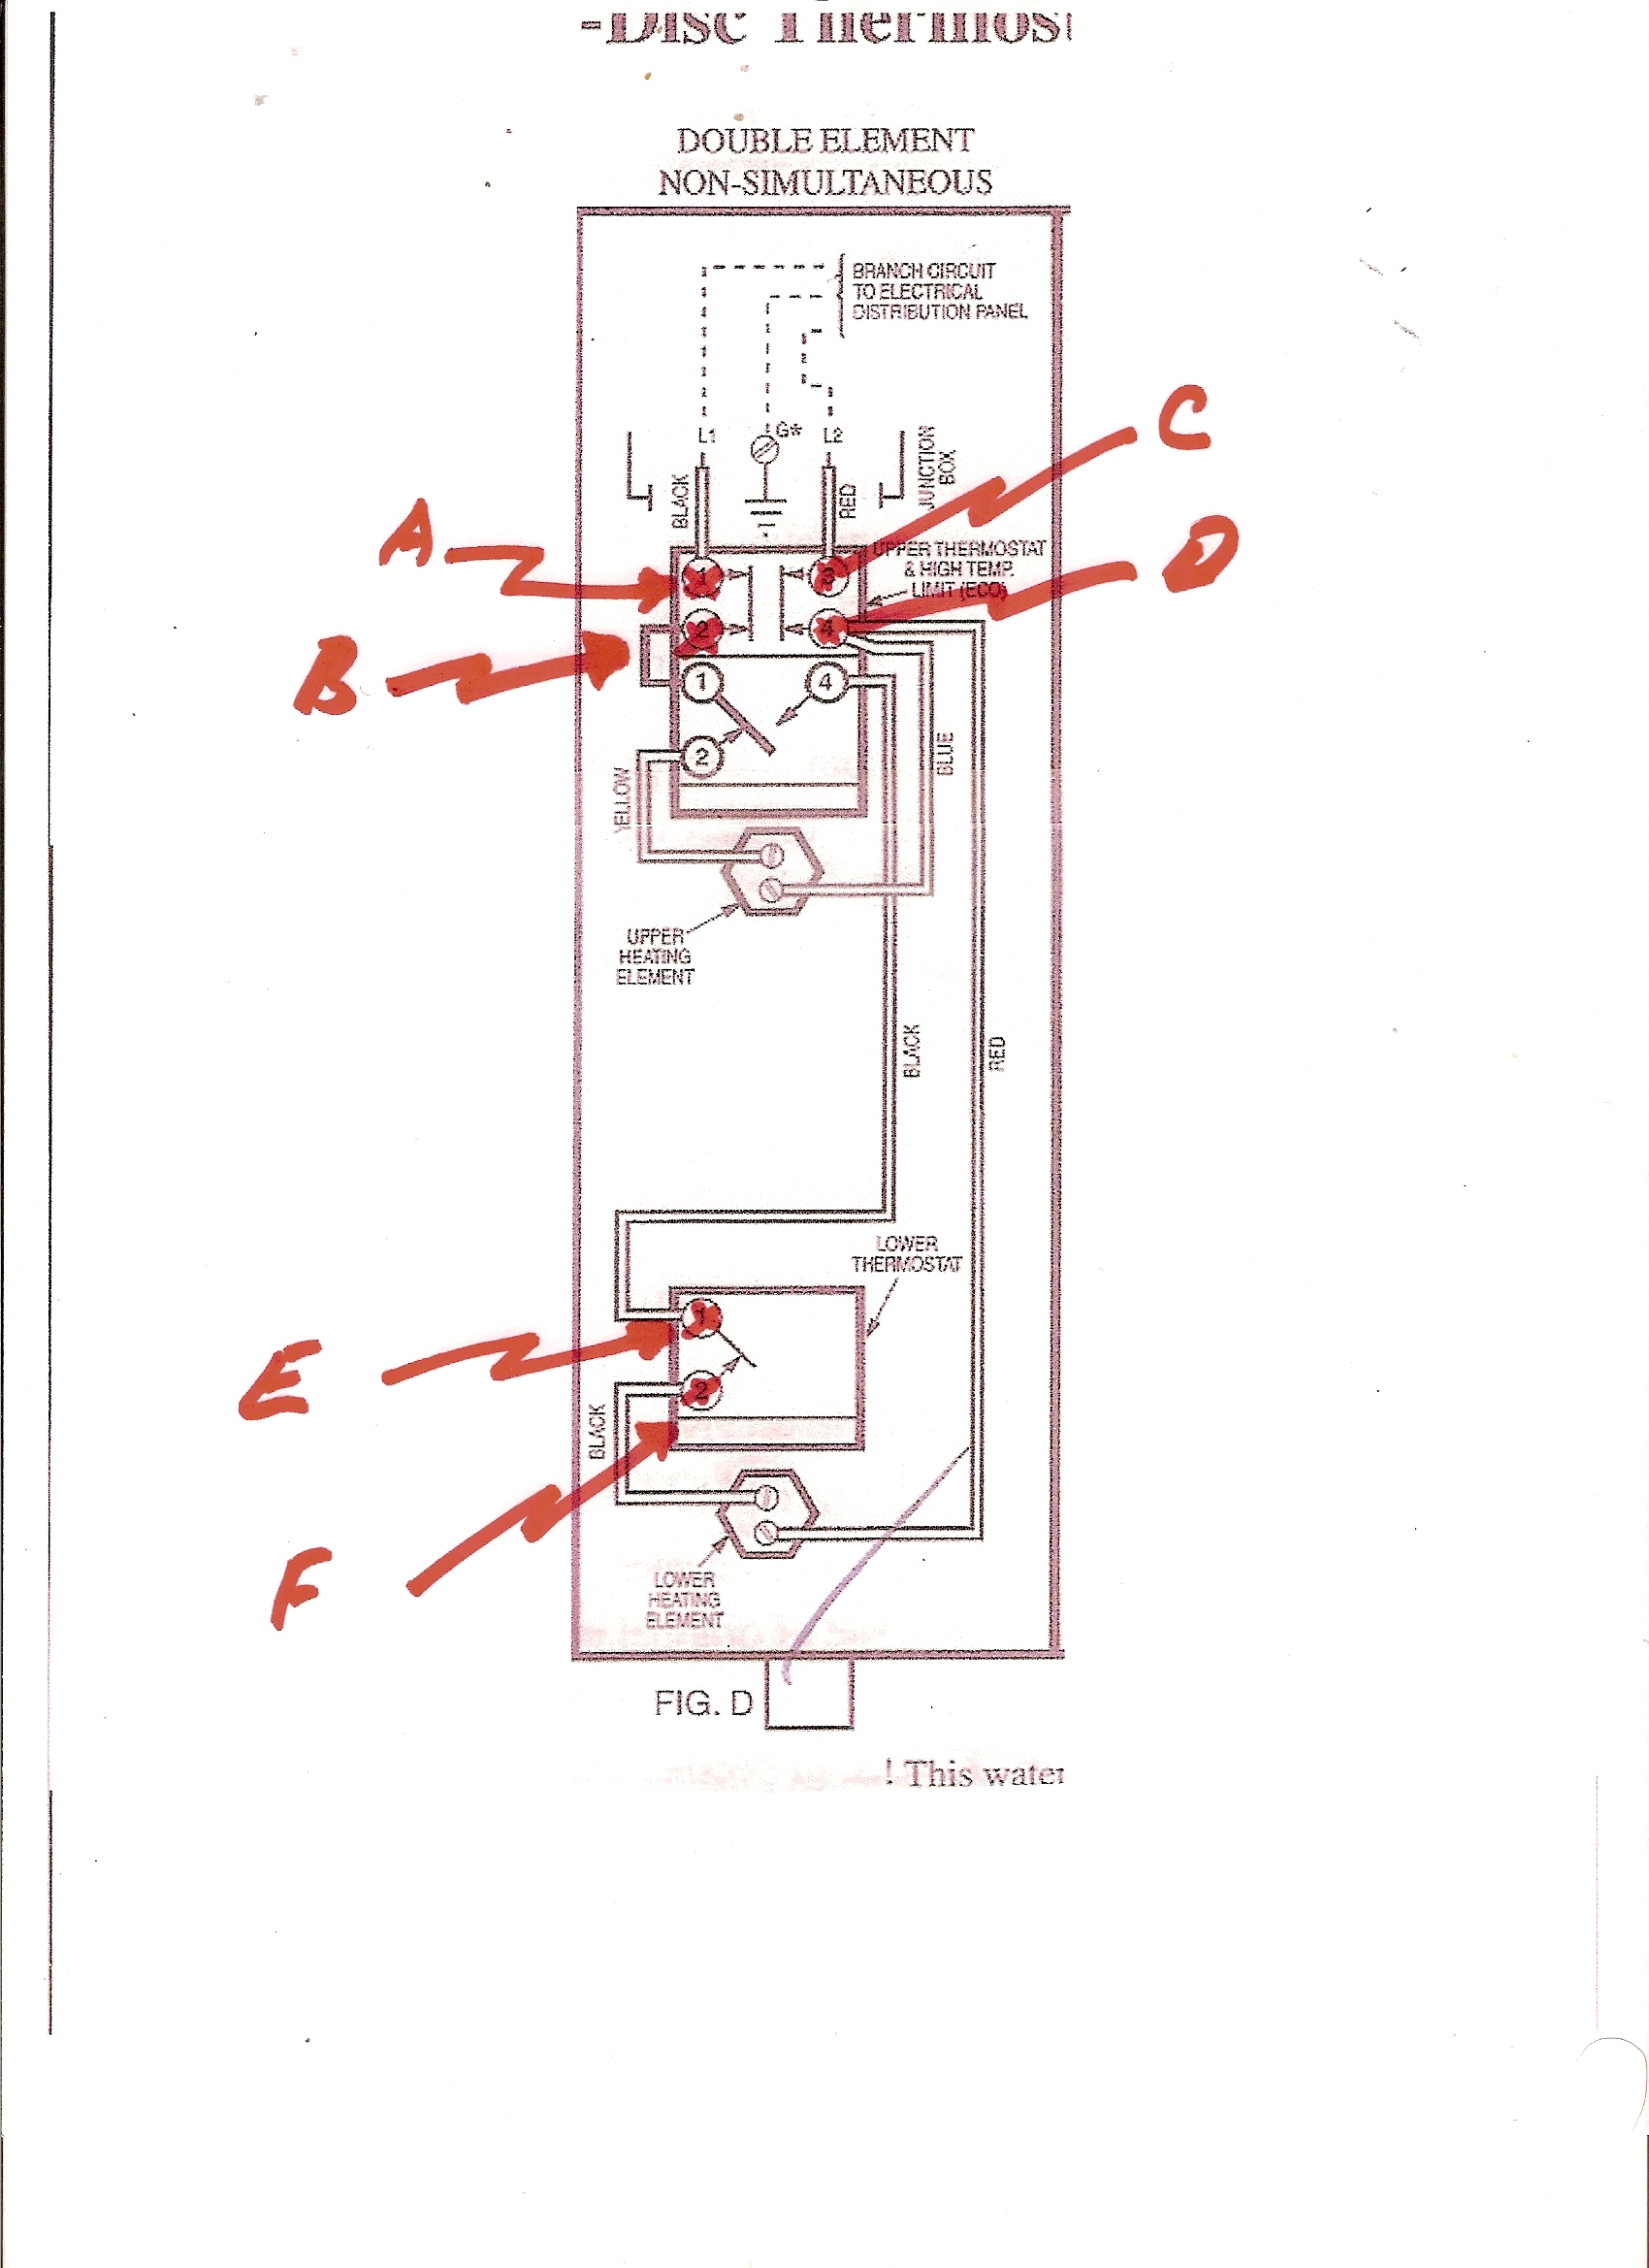 Electric Hot Water Heater Thermostat Wiring Diagram from s3.amazonaws.com